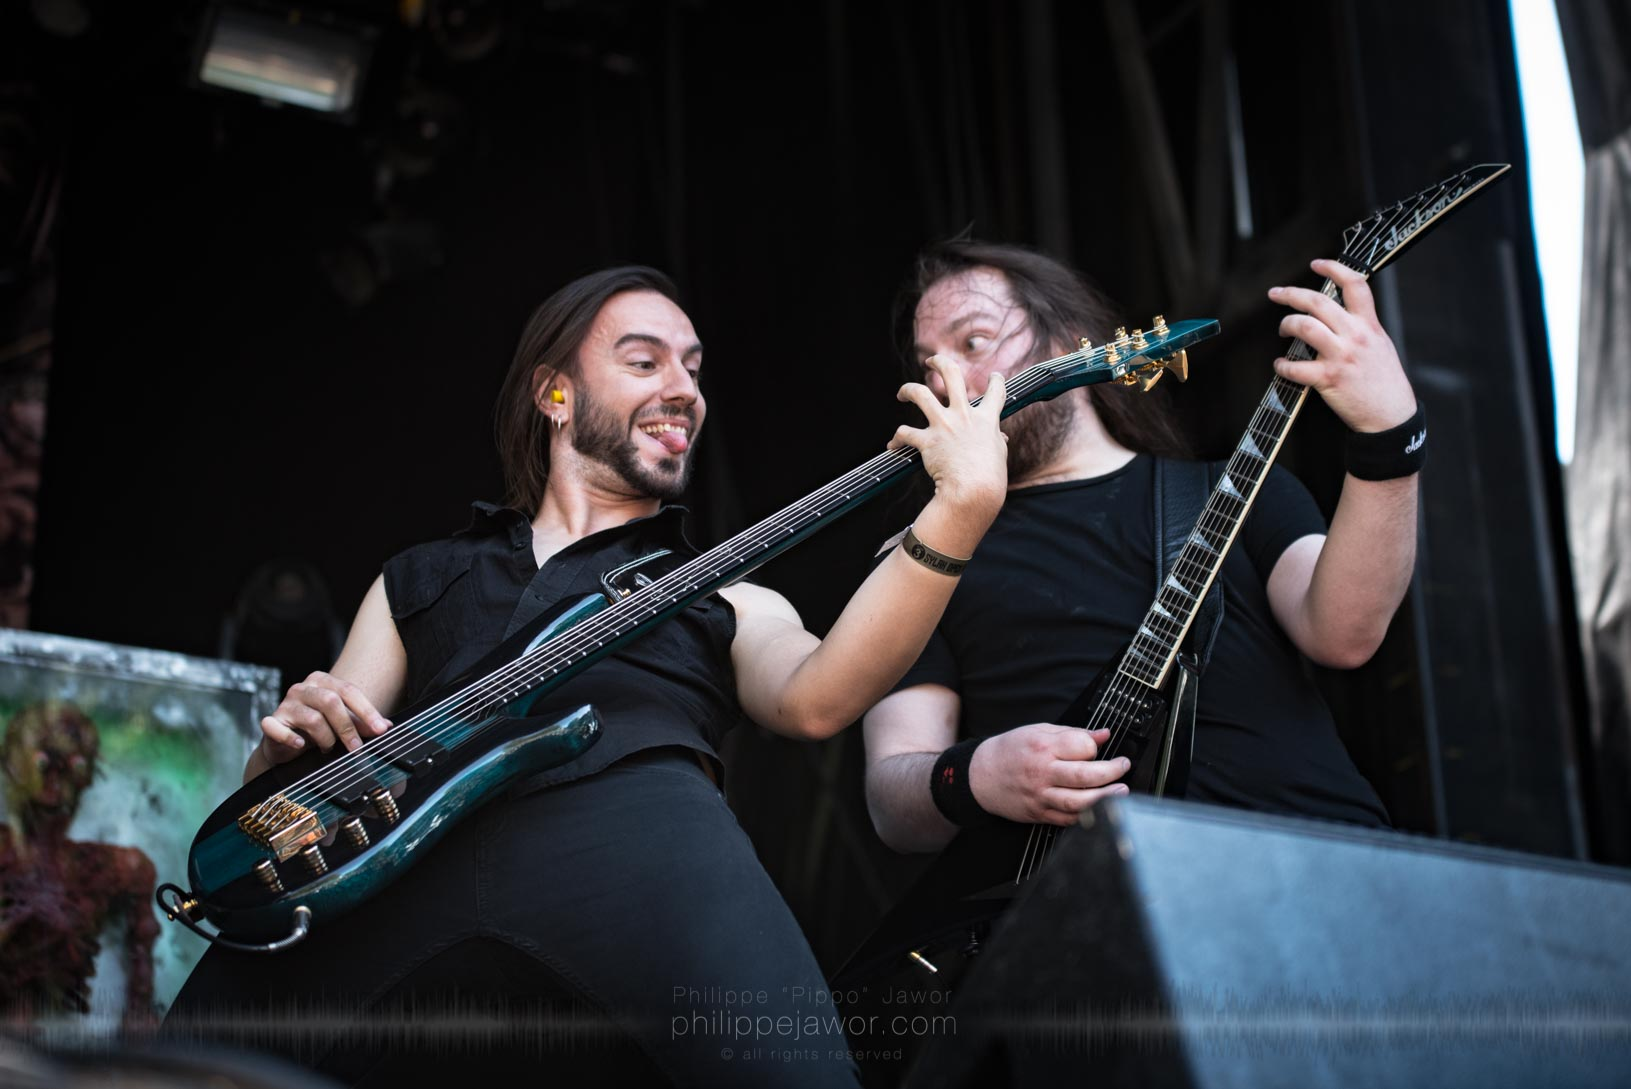 The Belgian brutal death metal band Aborted, live at Sylak Open Air festival, Saint Maurice de Gourdans, France, August 2017.  On assignment for Metal Obs' Magazine All rights reserved.